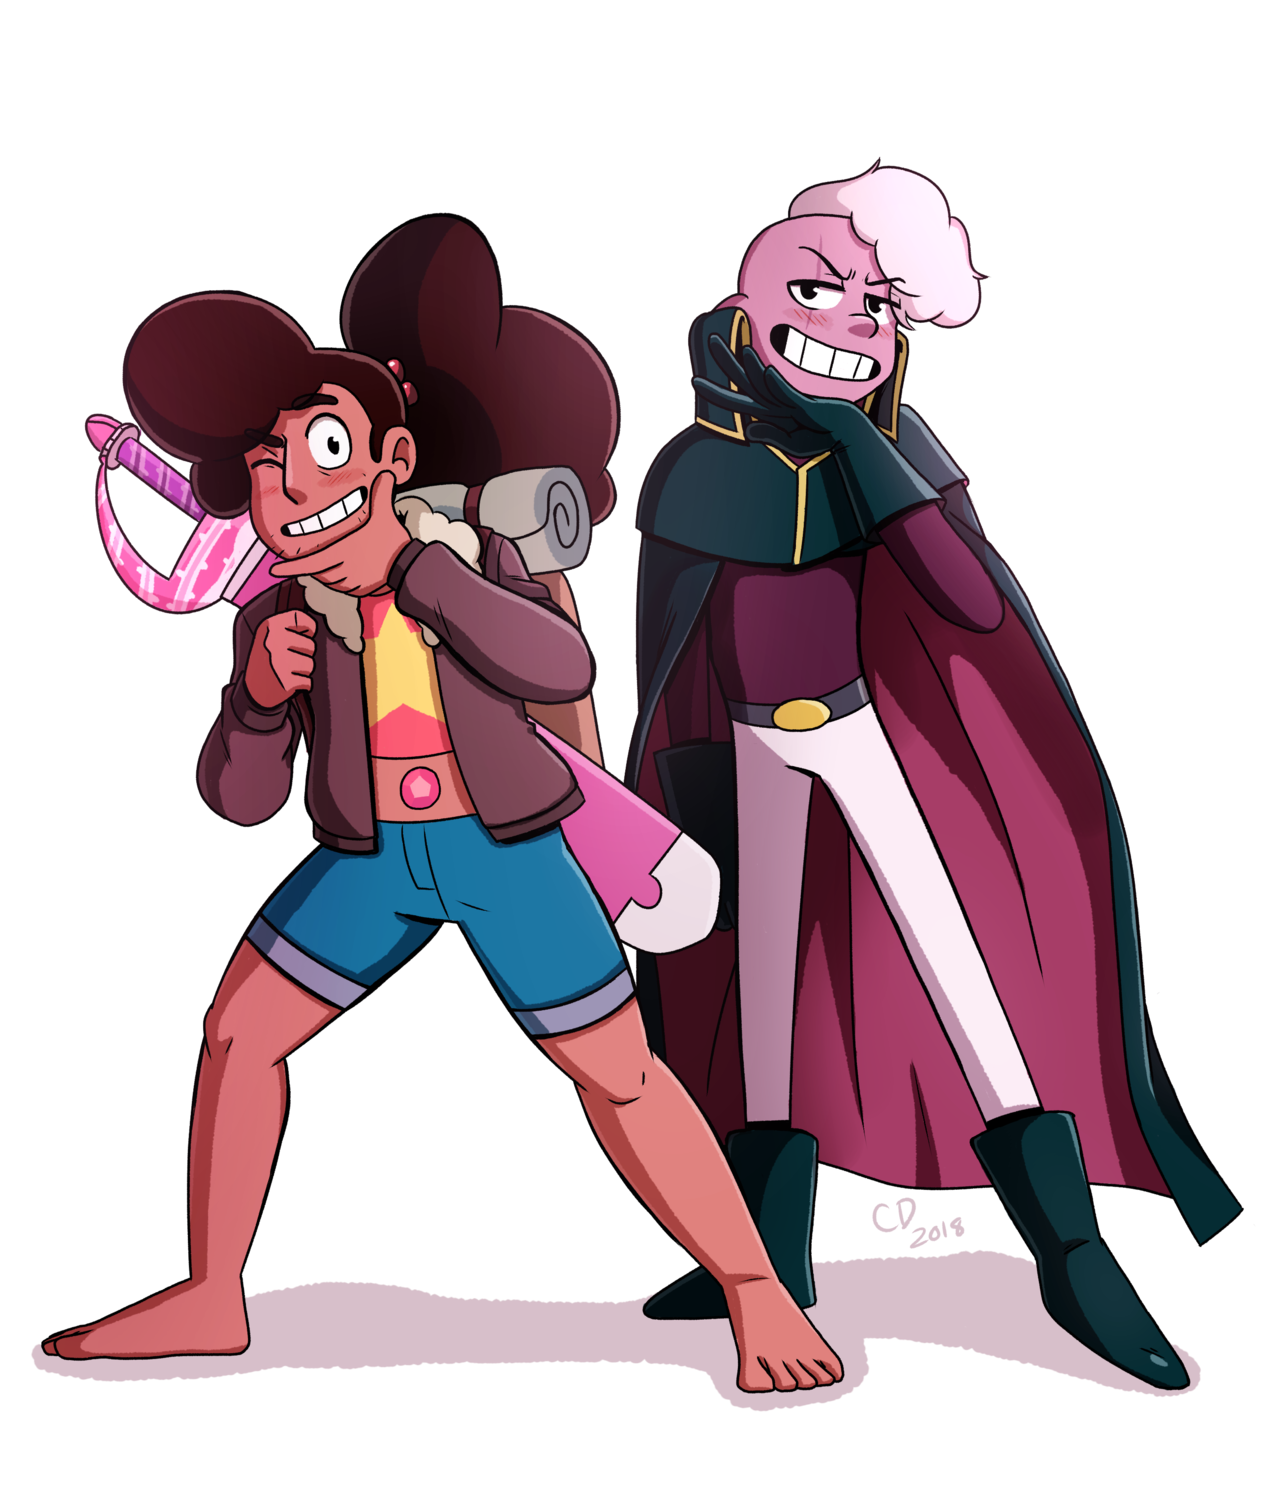 "The #StevenUniverse ""Stranded"" episodes are some of my favorites of the whole series! Stevonnie and Lars are two of my favorite characters so I was super happy seeing them get a lot of focus."